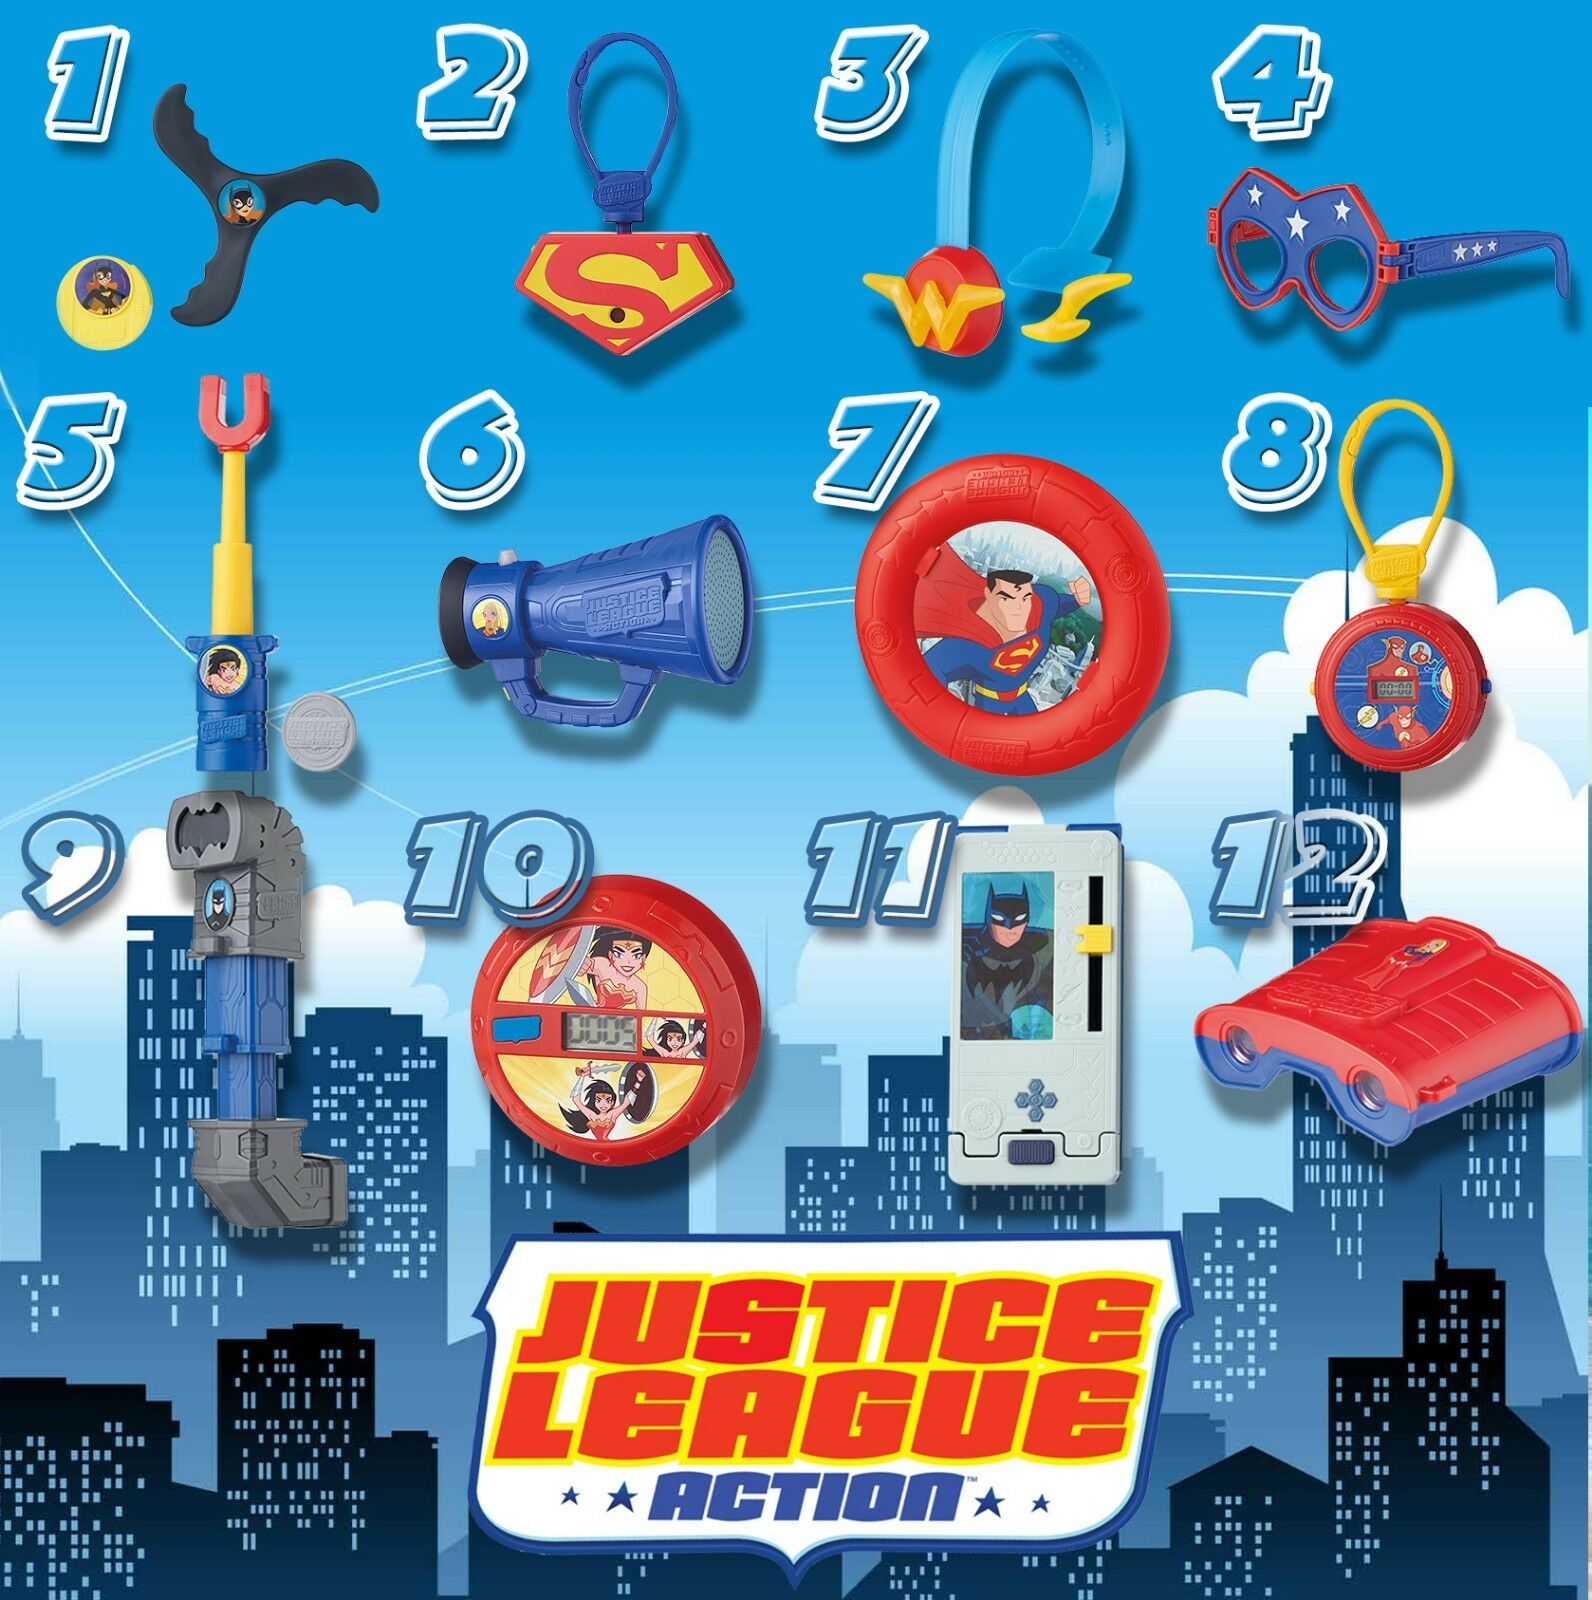 McDonald's Russia Toy Happy Meal 2018 Justice League Action set of 12